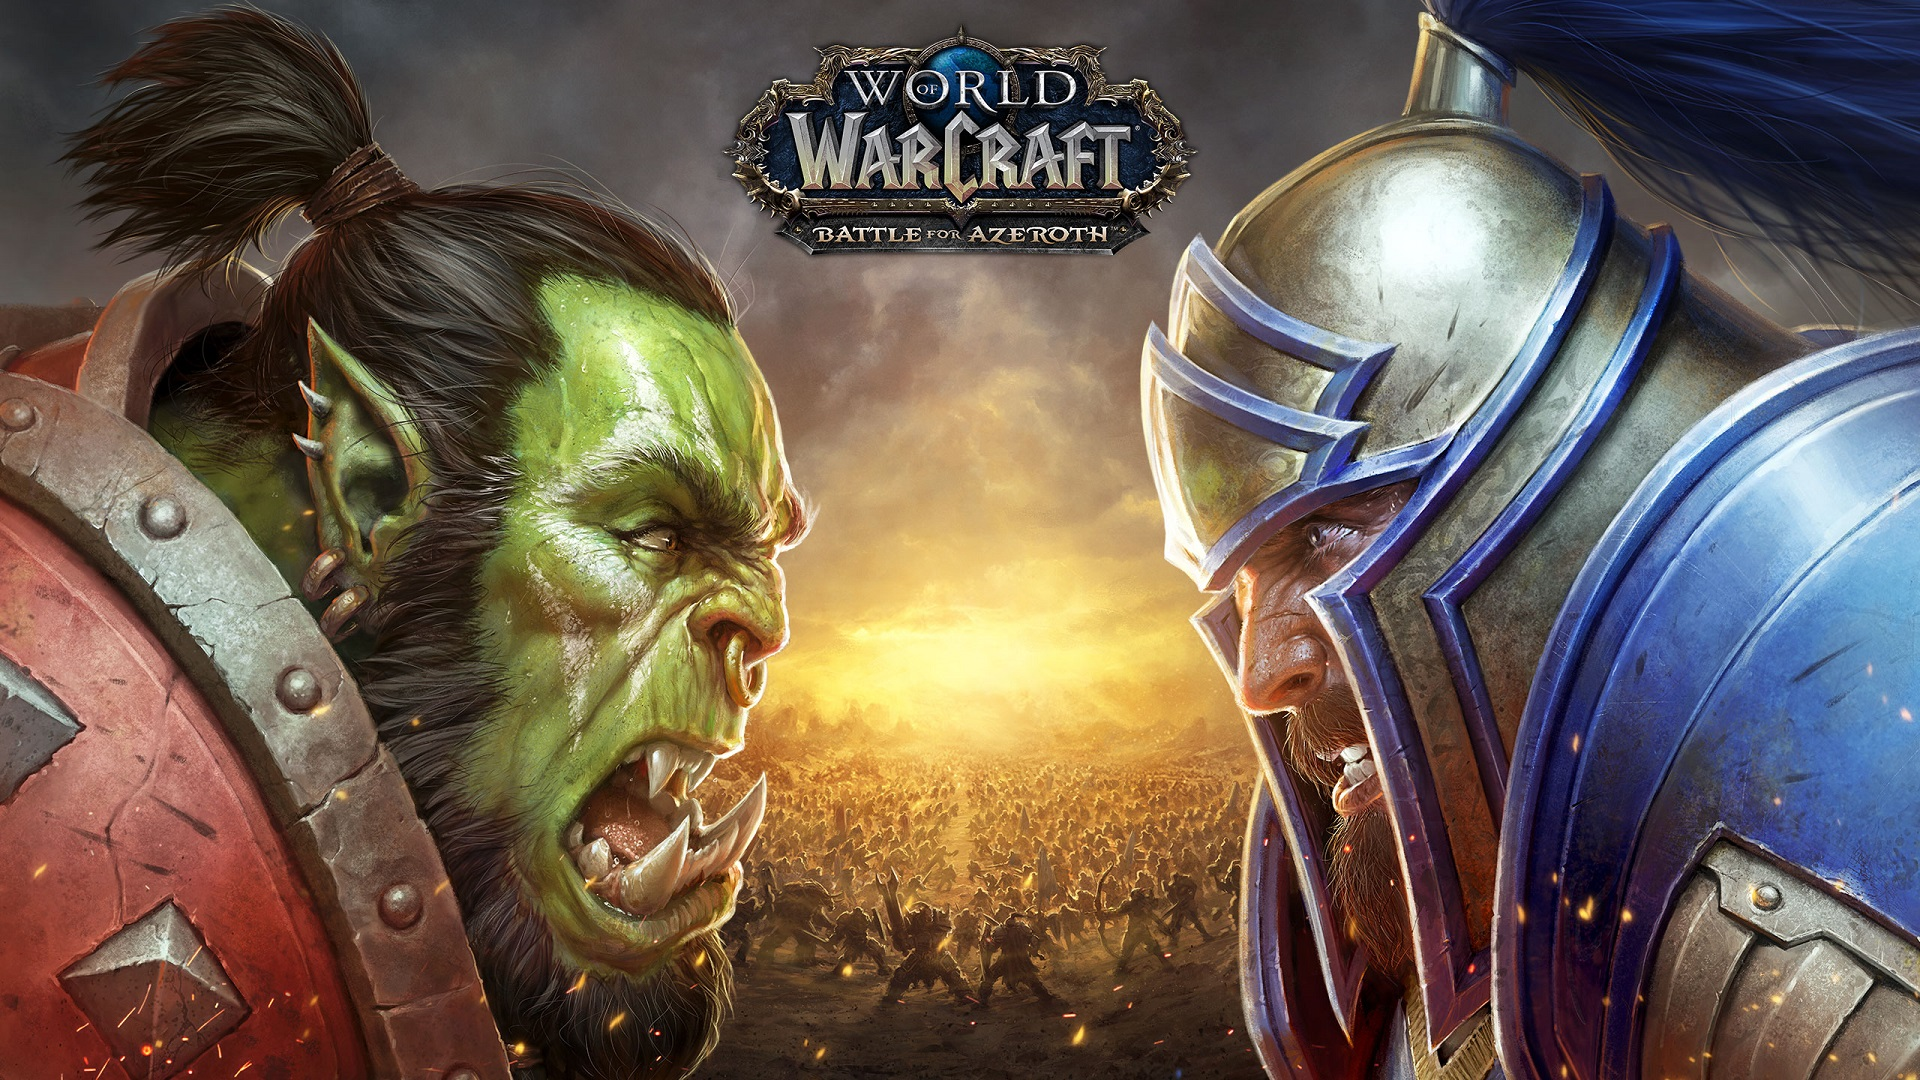 World of Warcraft: intervista a GGWP